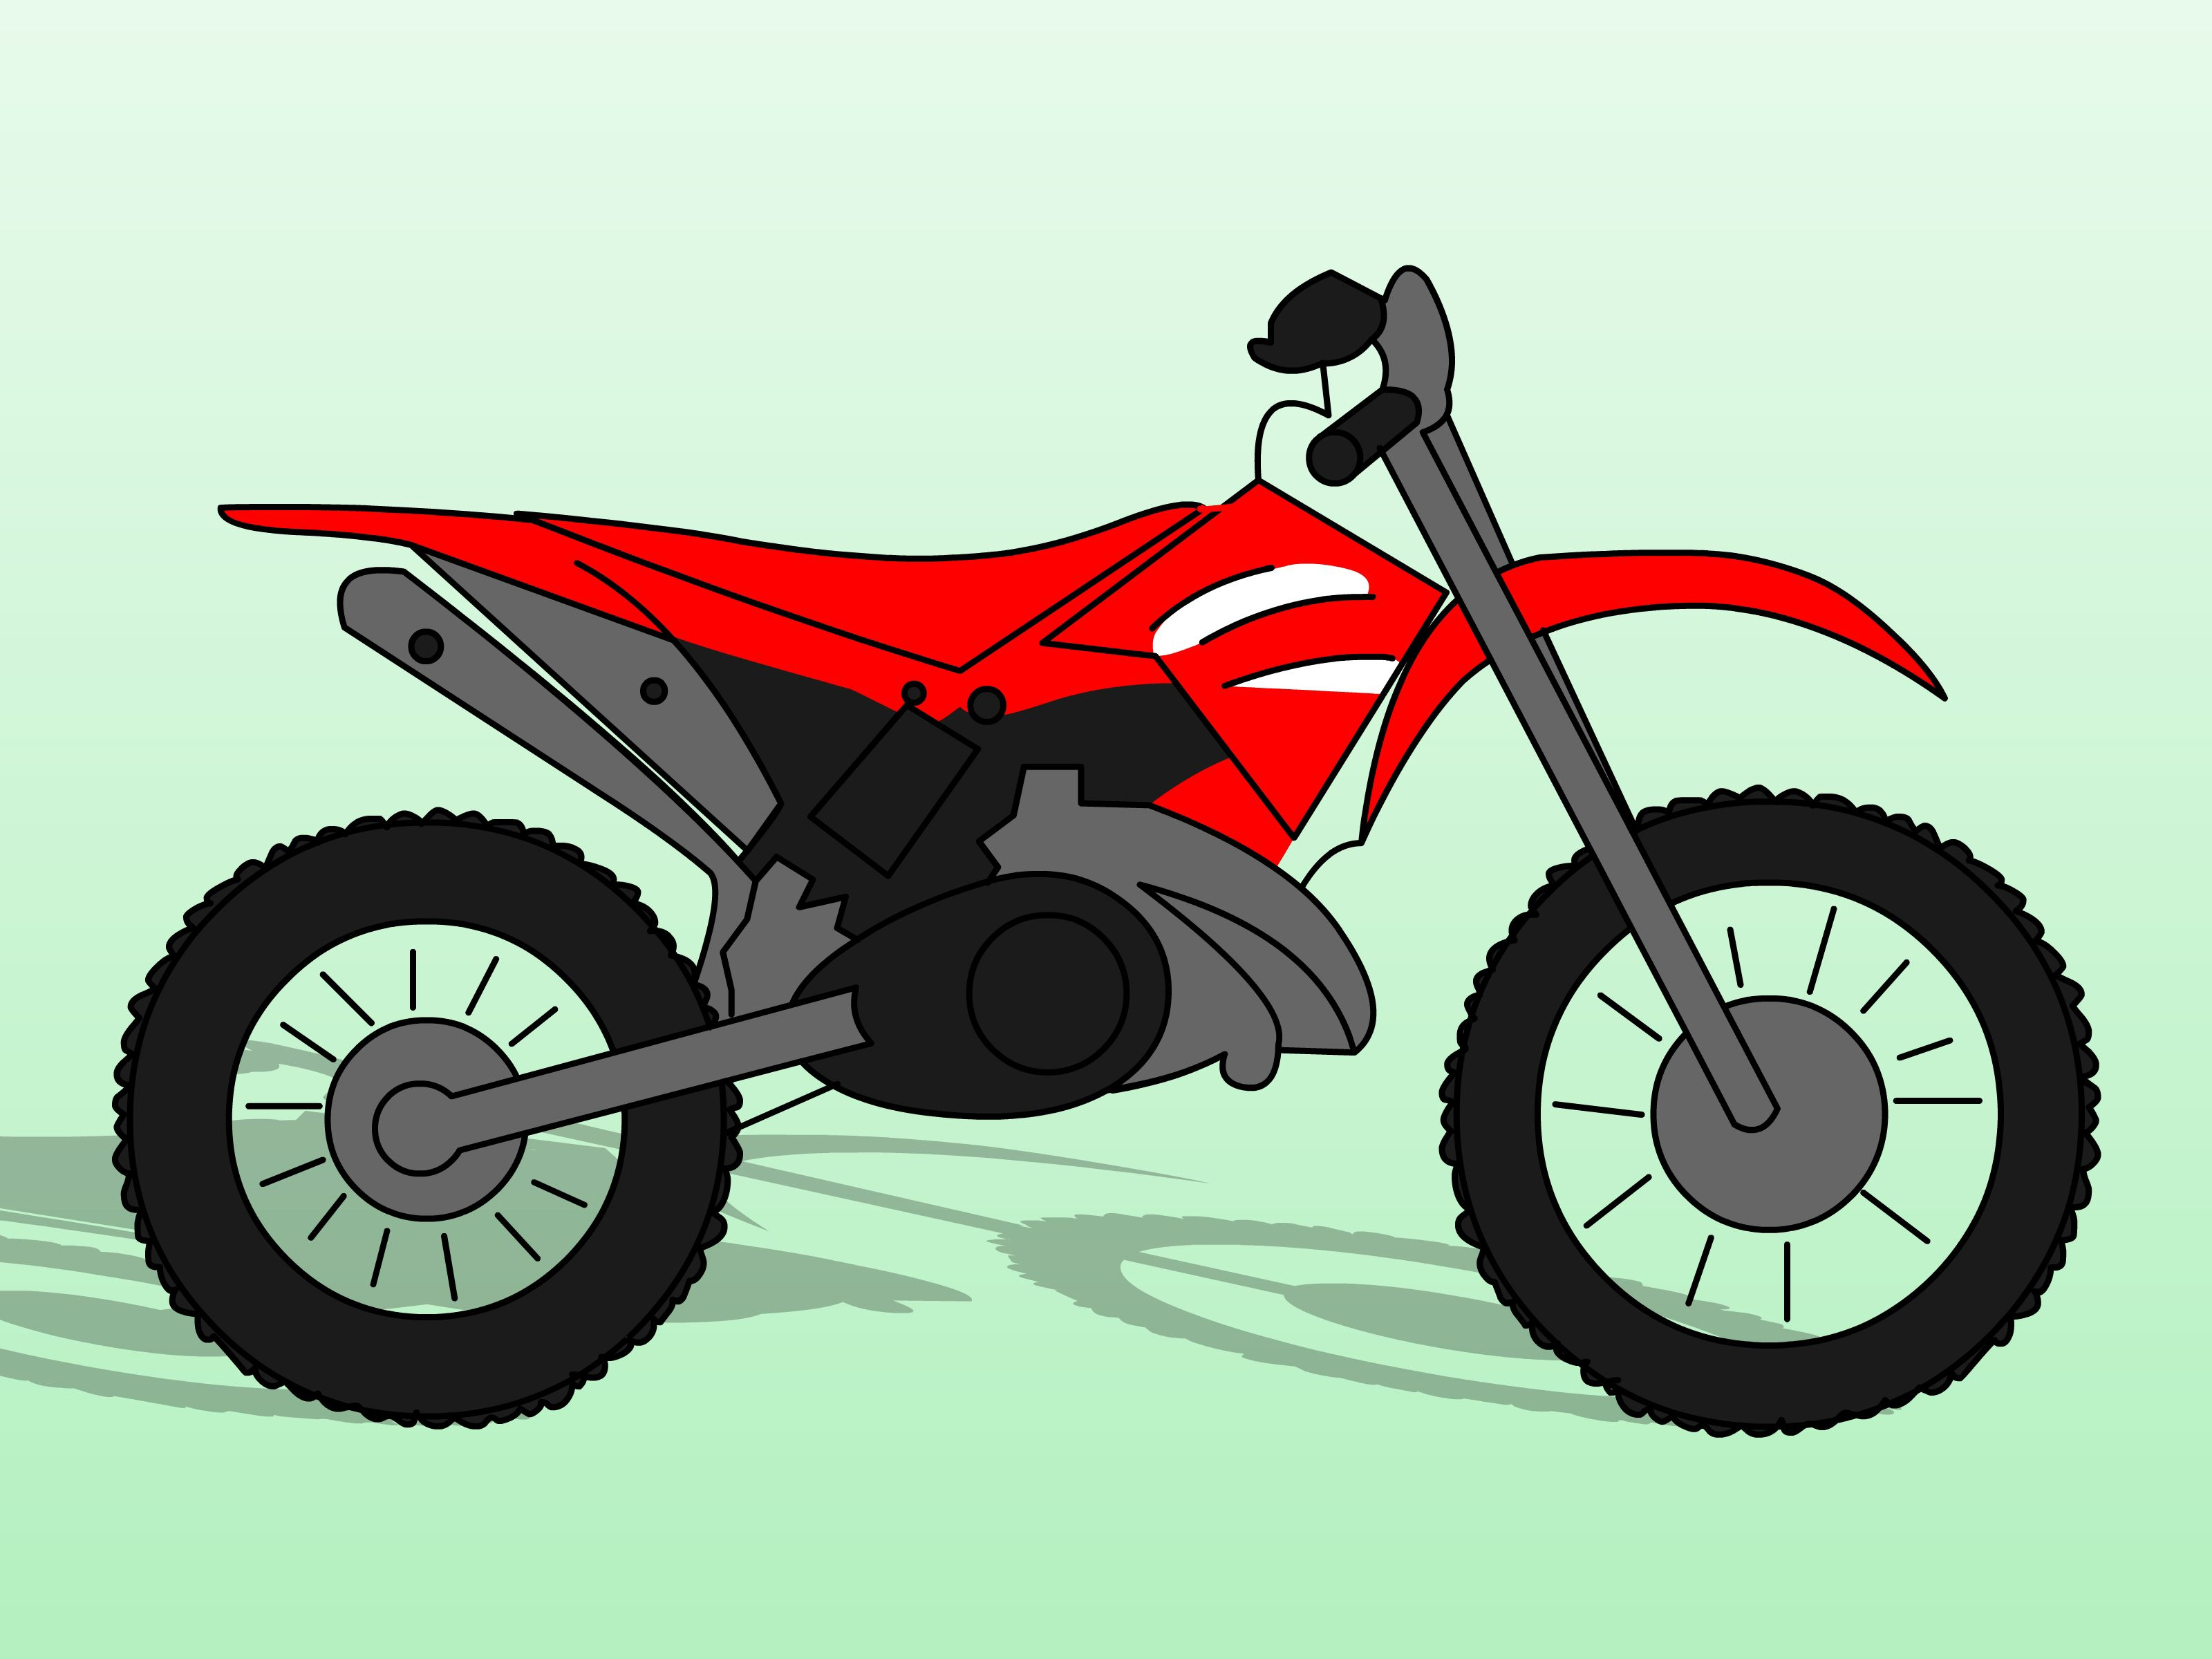 In This Tutorial You Will Learn How To Draw Dirt Bikes Which Are Motorcycles Designed To Run On Rough Terrain Enjoy Bike Drawing Dirt Bike Motorcycle Drawing